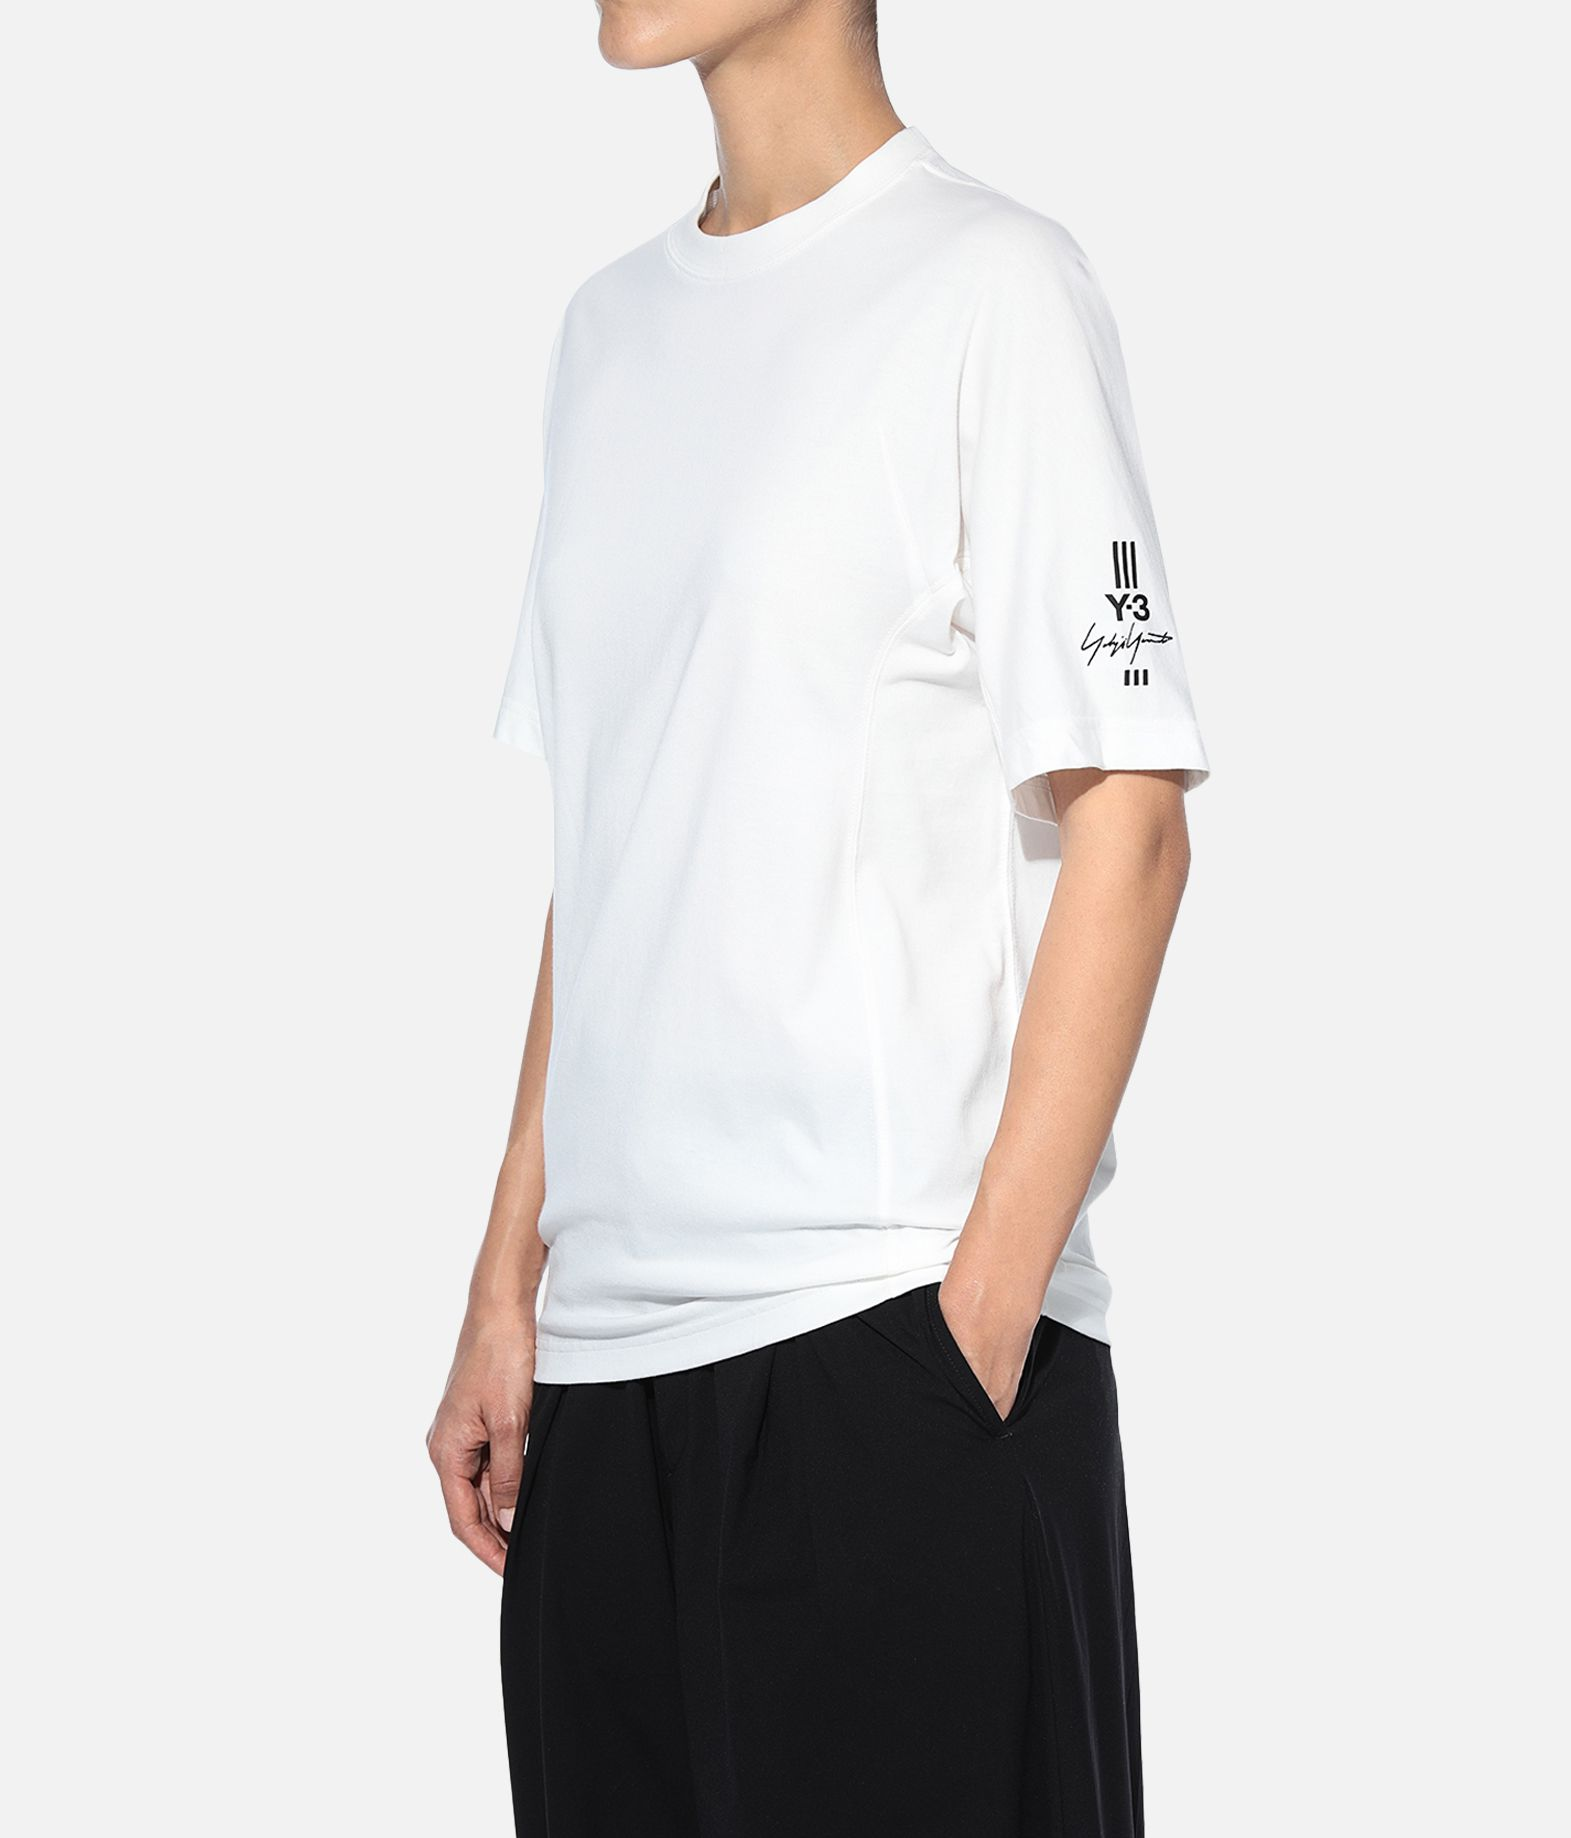 Y-3 Y-3 Classic Tee Short sleeve t-shirt Woman e